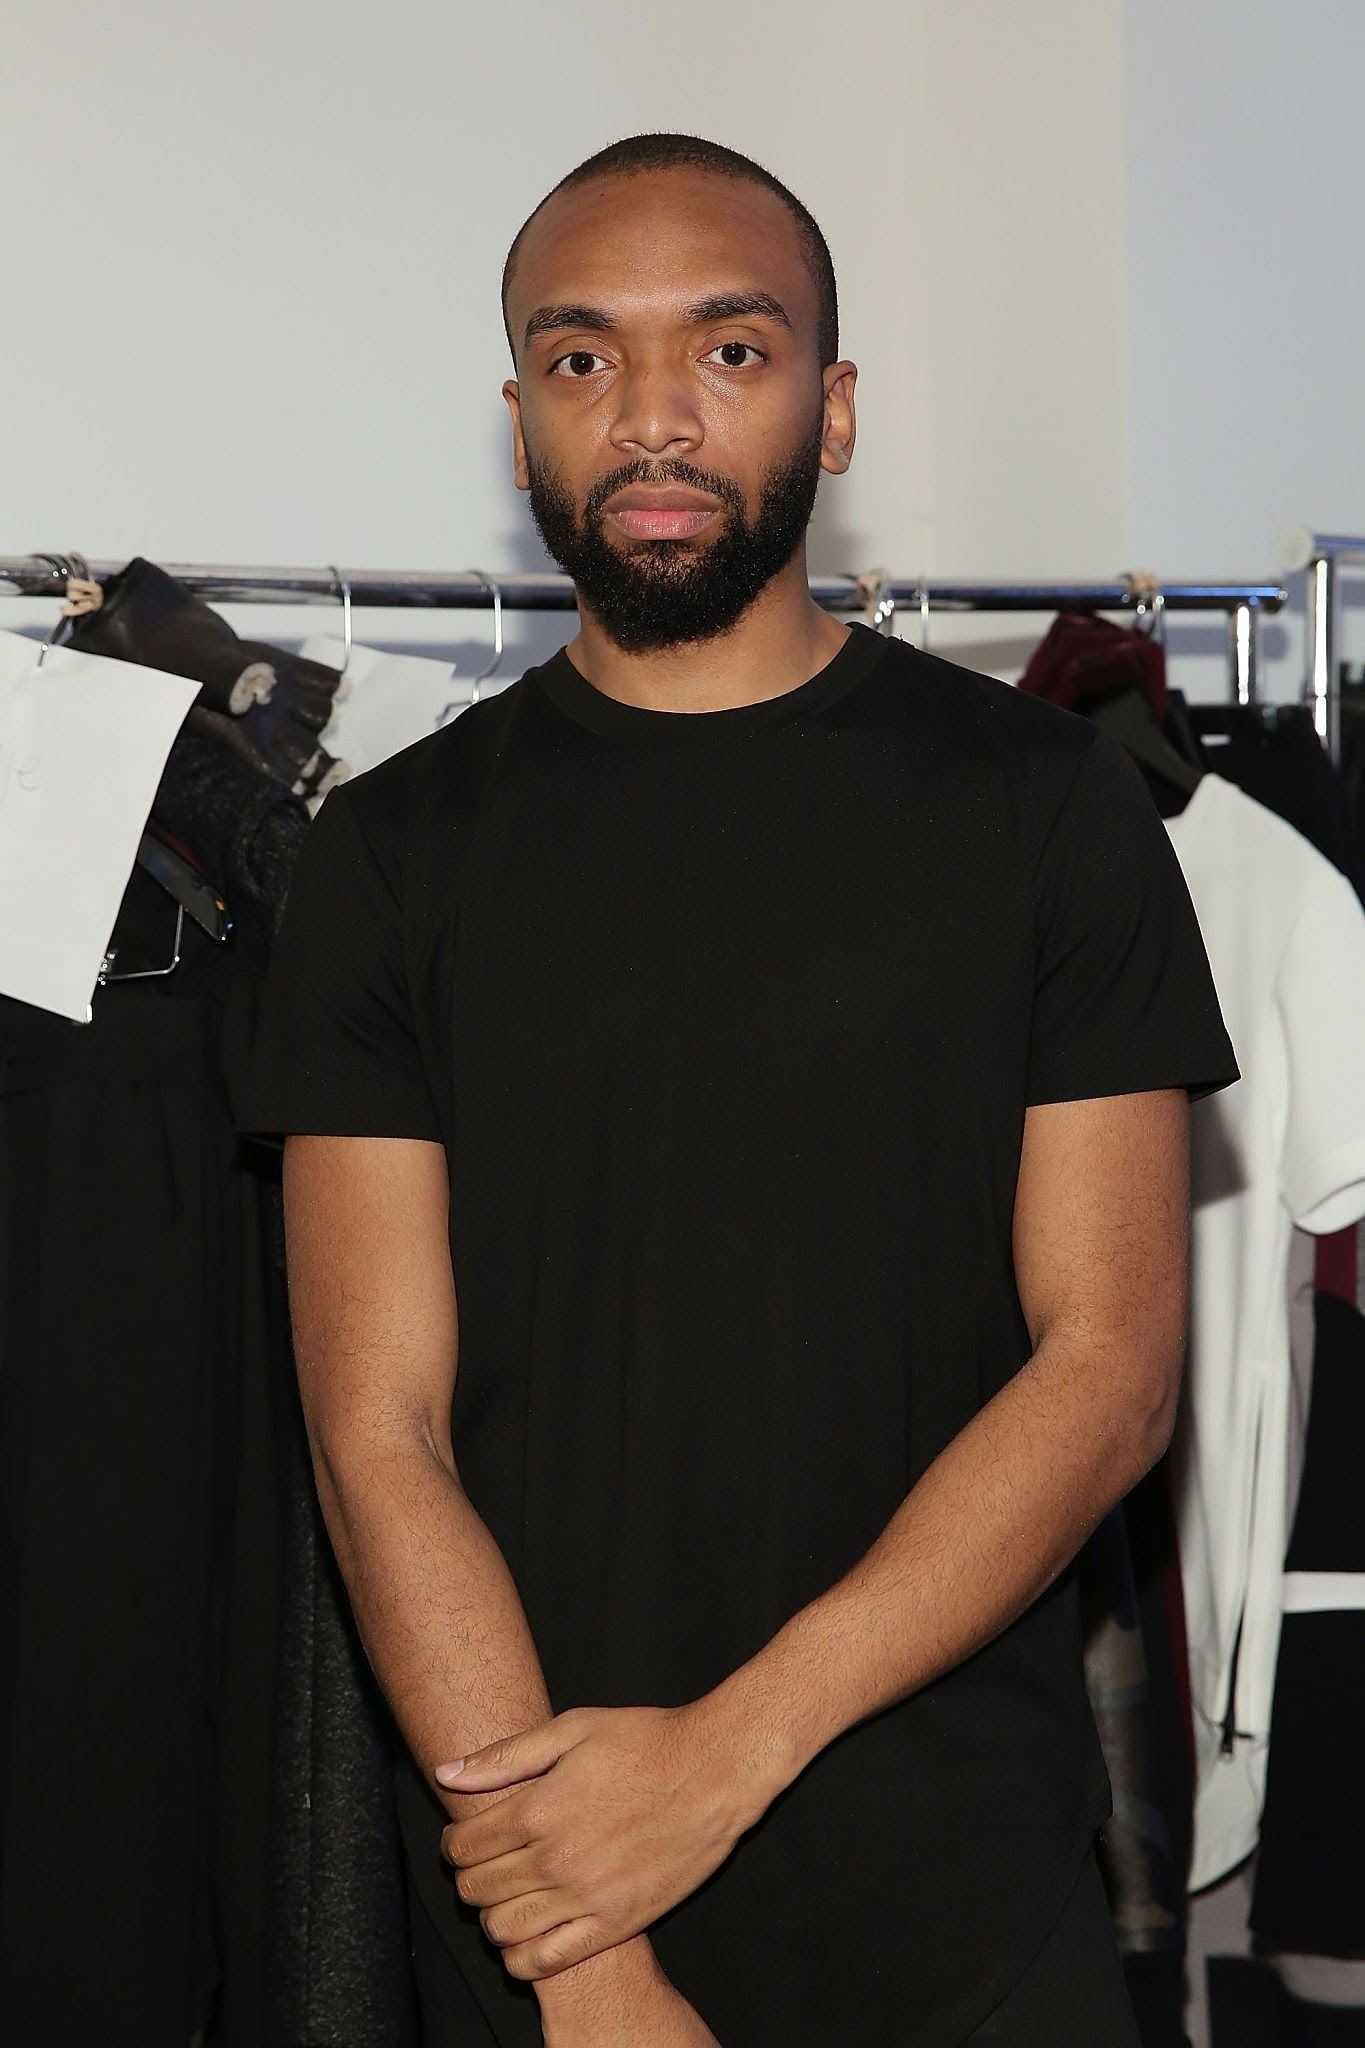 Pyer Moss designer Kerby Jean-Raymond posing for a photo